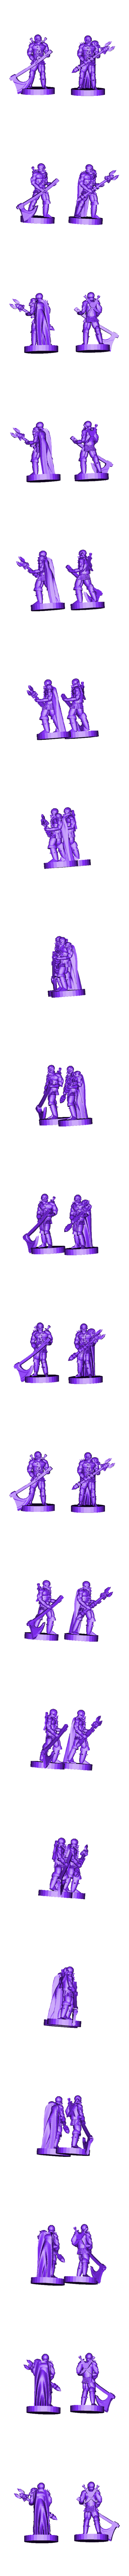 dnd_orc_28mm.stl Download free STL file DnD Orc • 3D print template, mrhers2